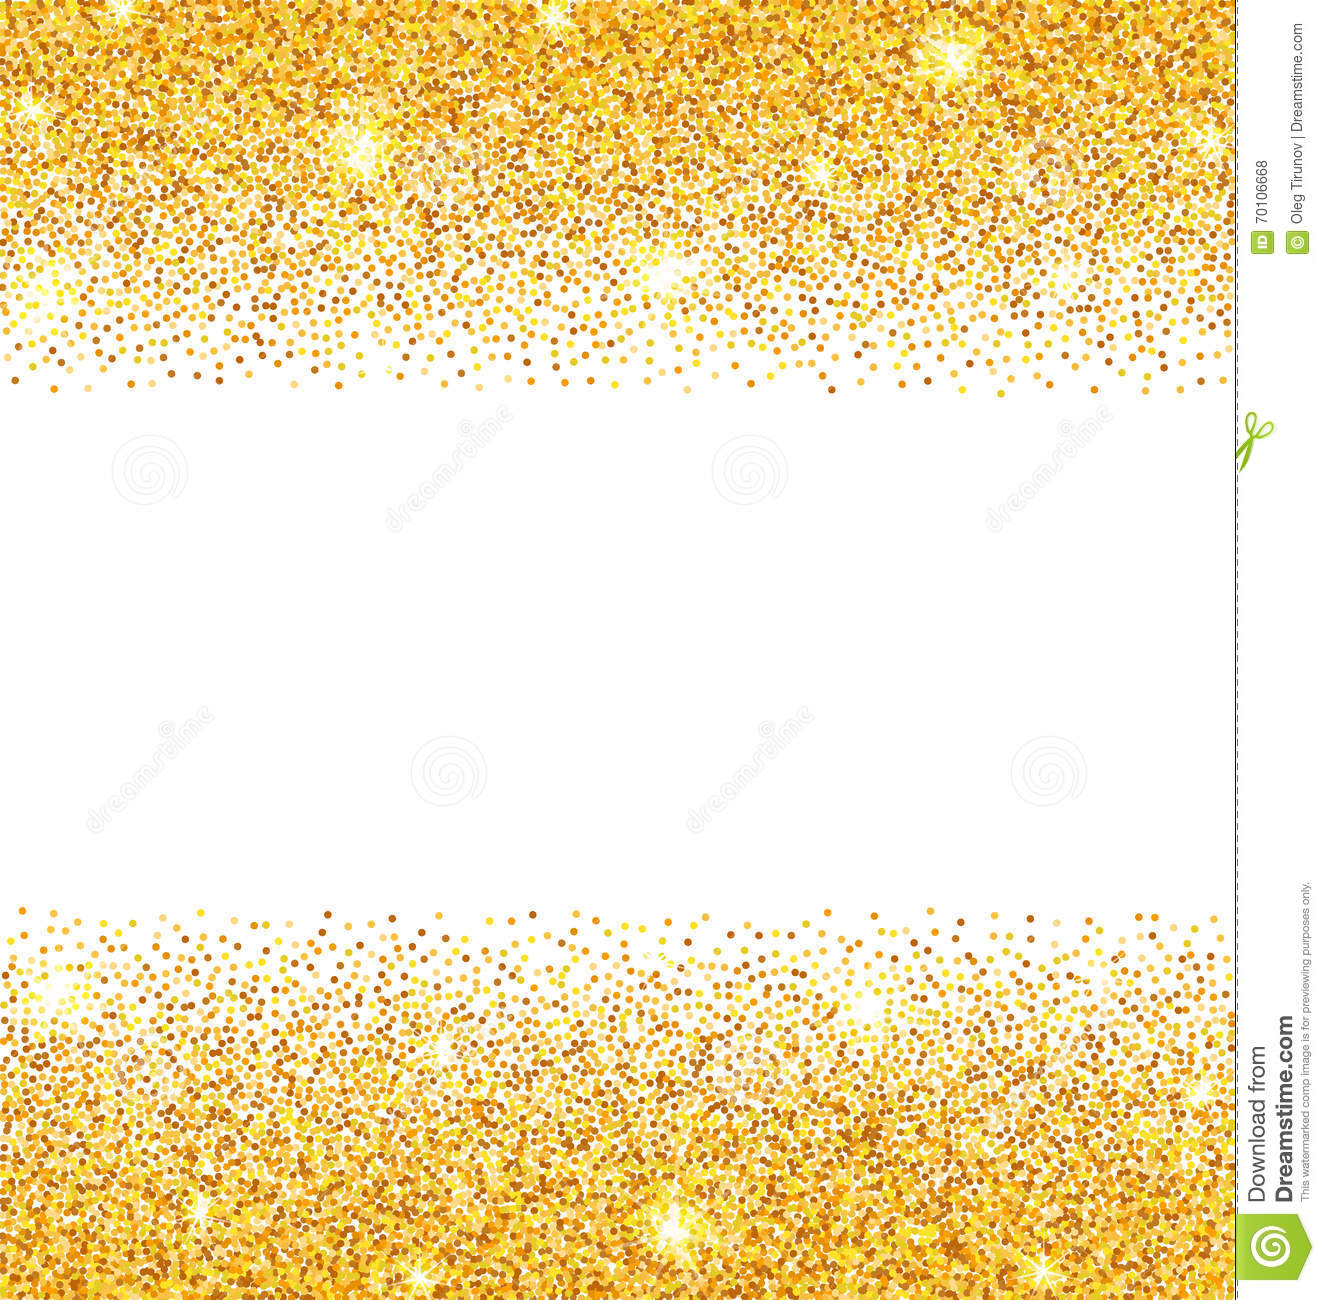 Golden sparkles on white. Glitter clipart gold abstract clipart transparent